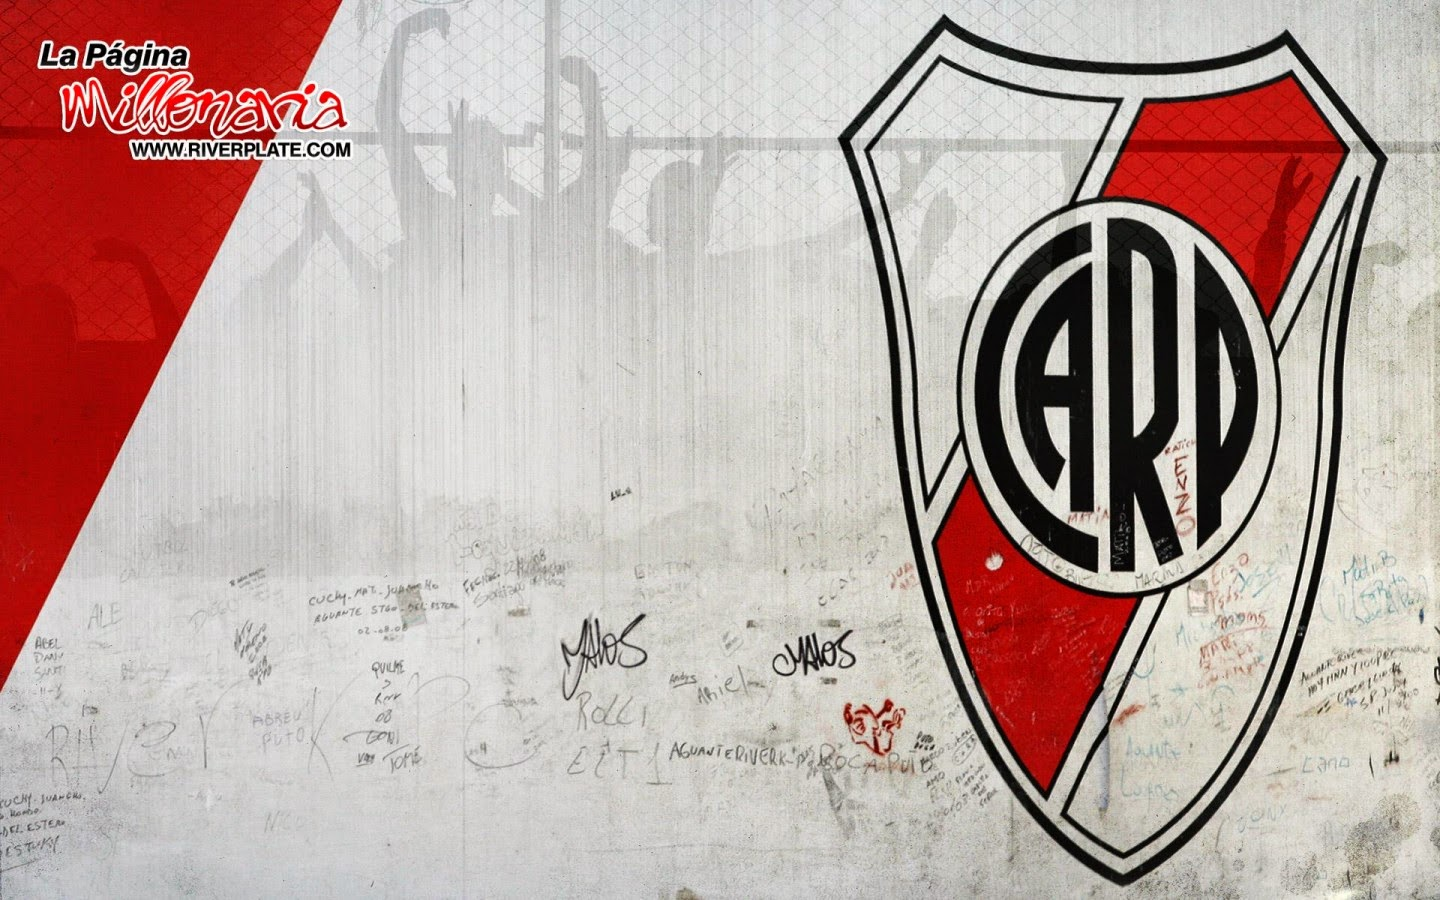 Download River Plate Wallpapers In Hd For Desktop Or Gadget Free